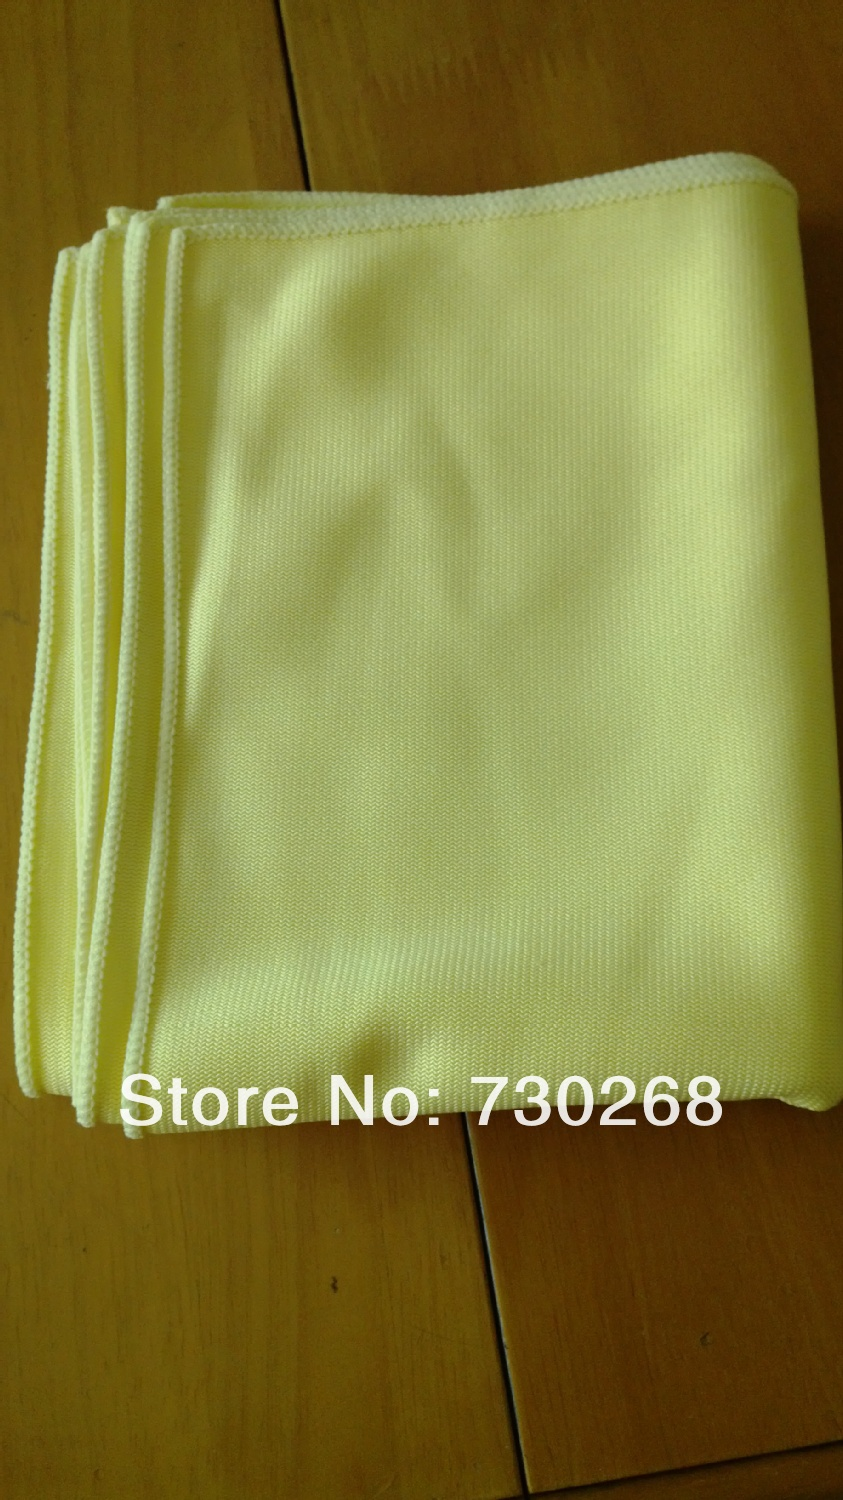 hot sales 1pc micro fiber & micro fibre car cleaning cloth window cleaning wiping cloth auto polishing clean towel optical cloth(China (Mainland))